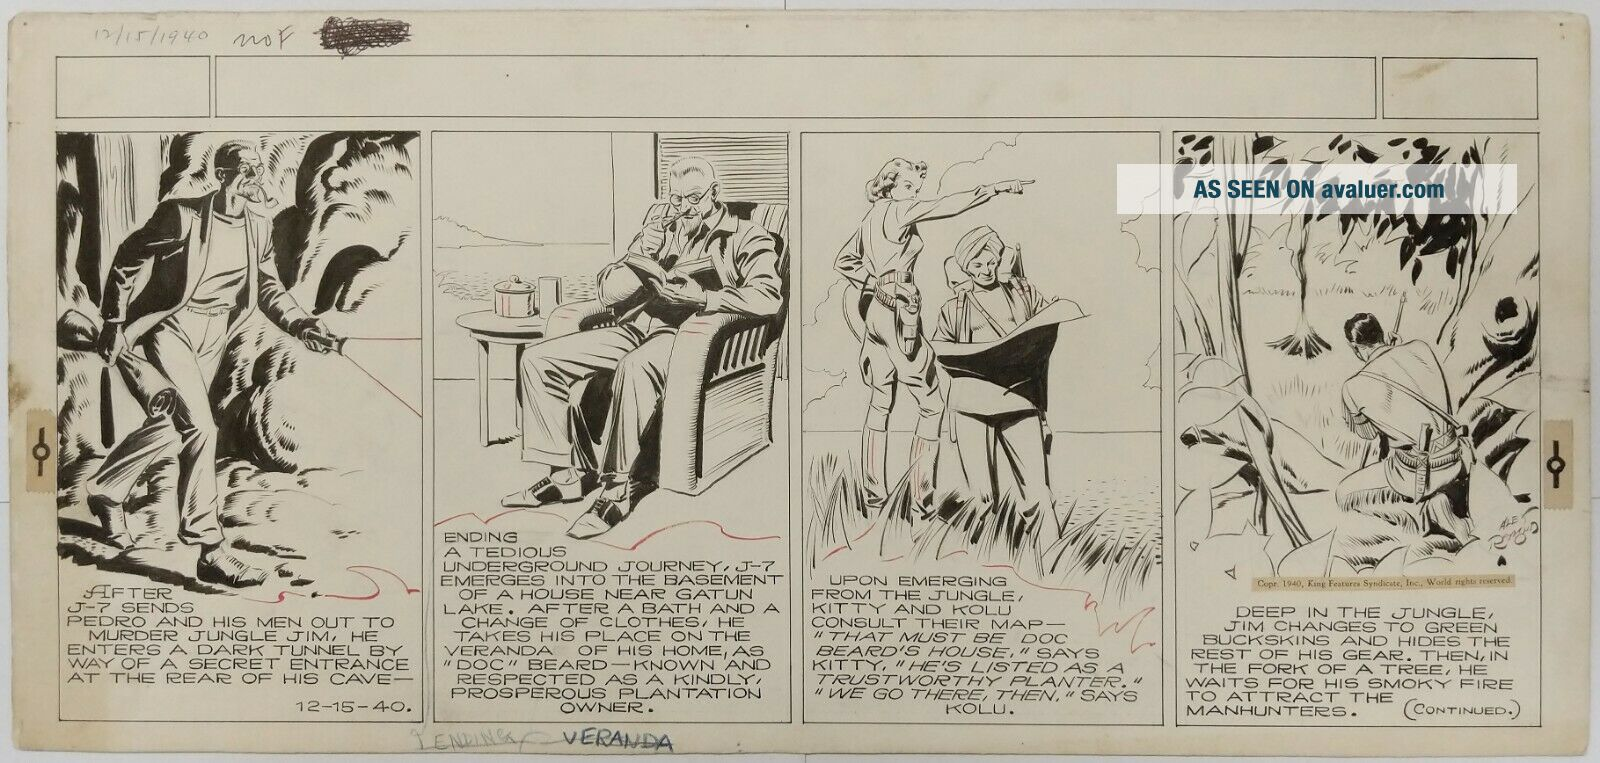 ART,  ALEX RAYMOND,  JUNGLE JIM (1940 - 12 - 15) topper - format Sunday strip